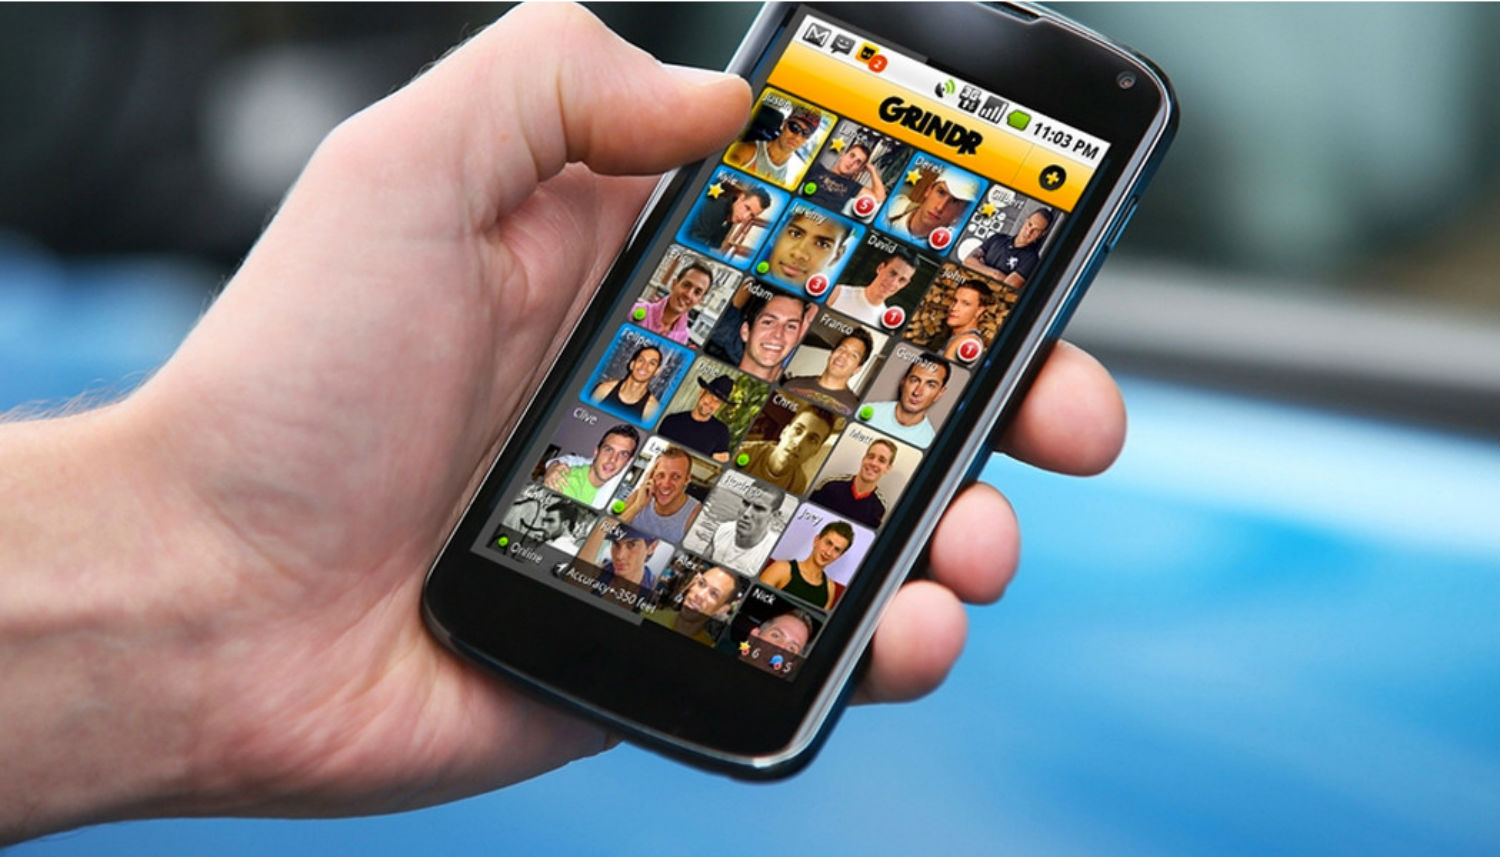 Grindr helps gay men quickly find hook-